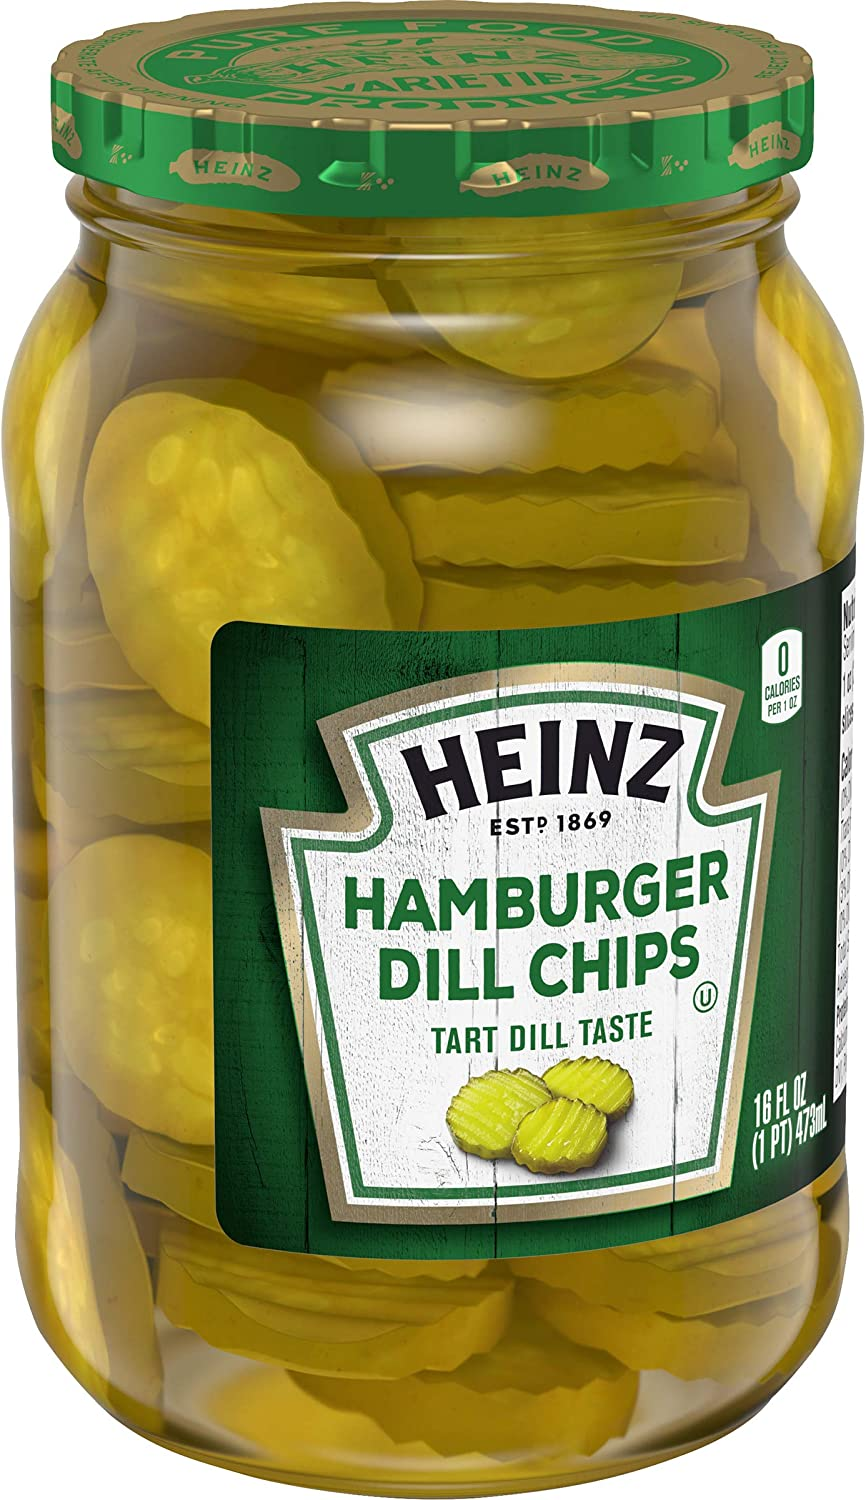 Heinz Hamburger Dill Chips 473ml 16 Fl Oz Amazon Co Uk Grocery